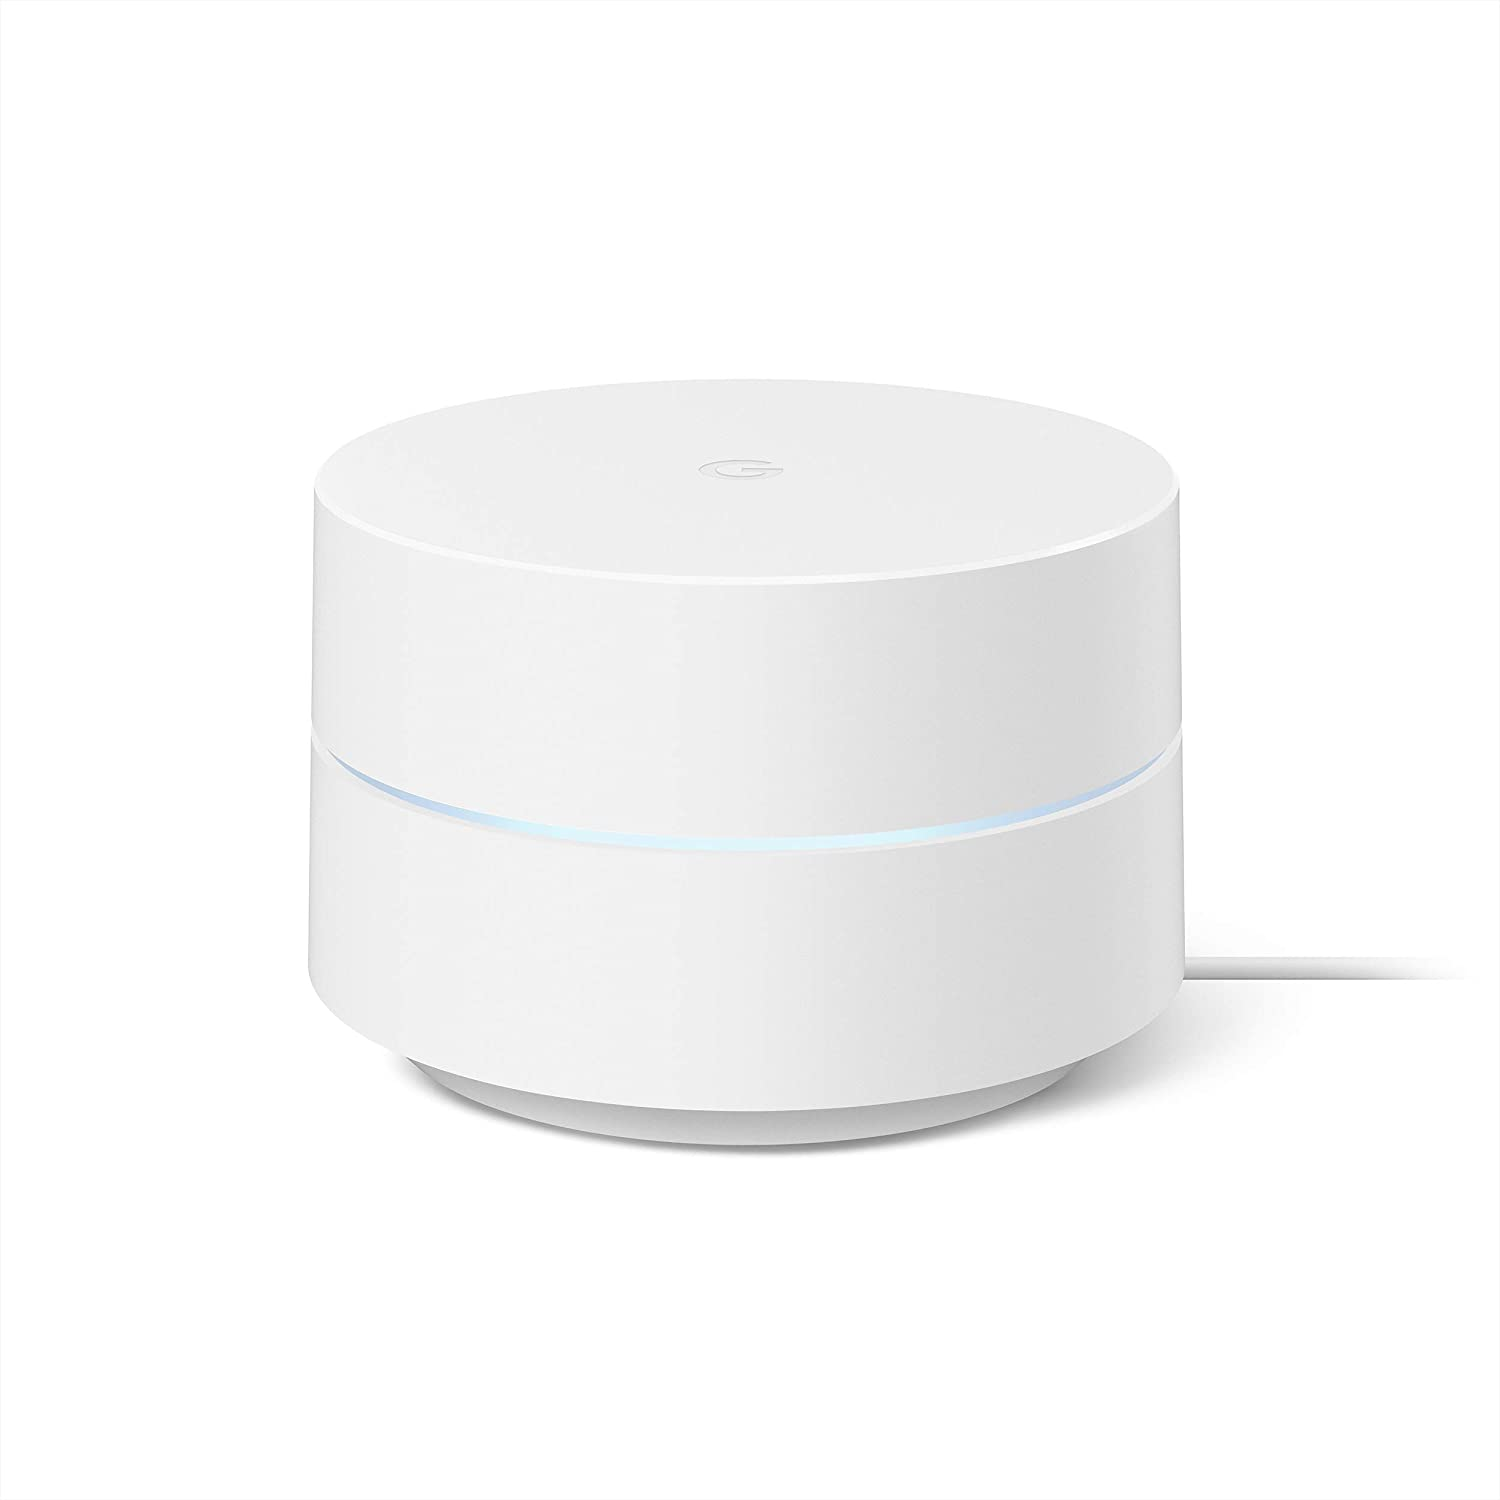 Google Wifi - Mesh Wifi System - Wifi Router Replacement - 1 Pack